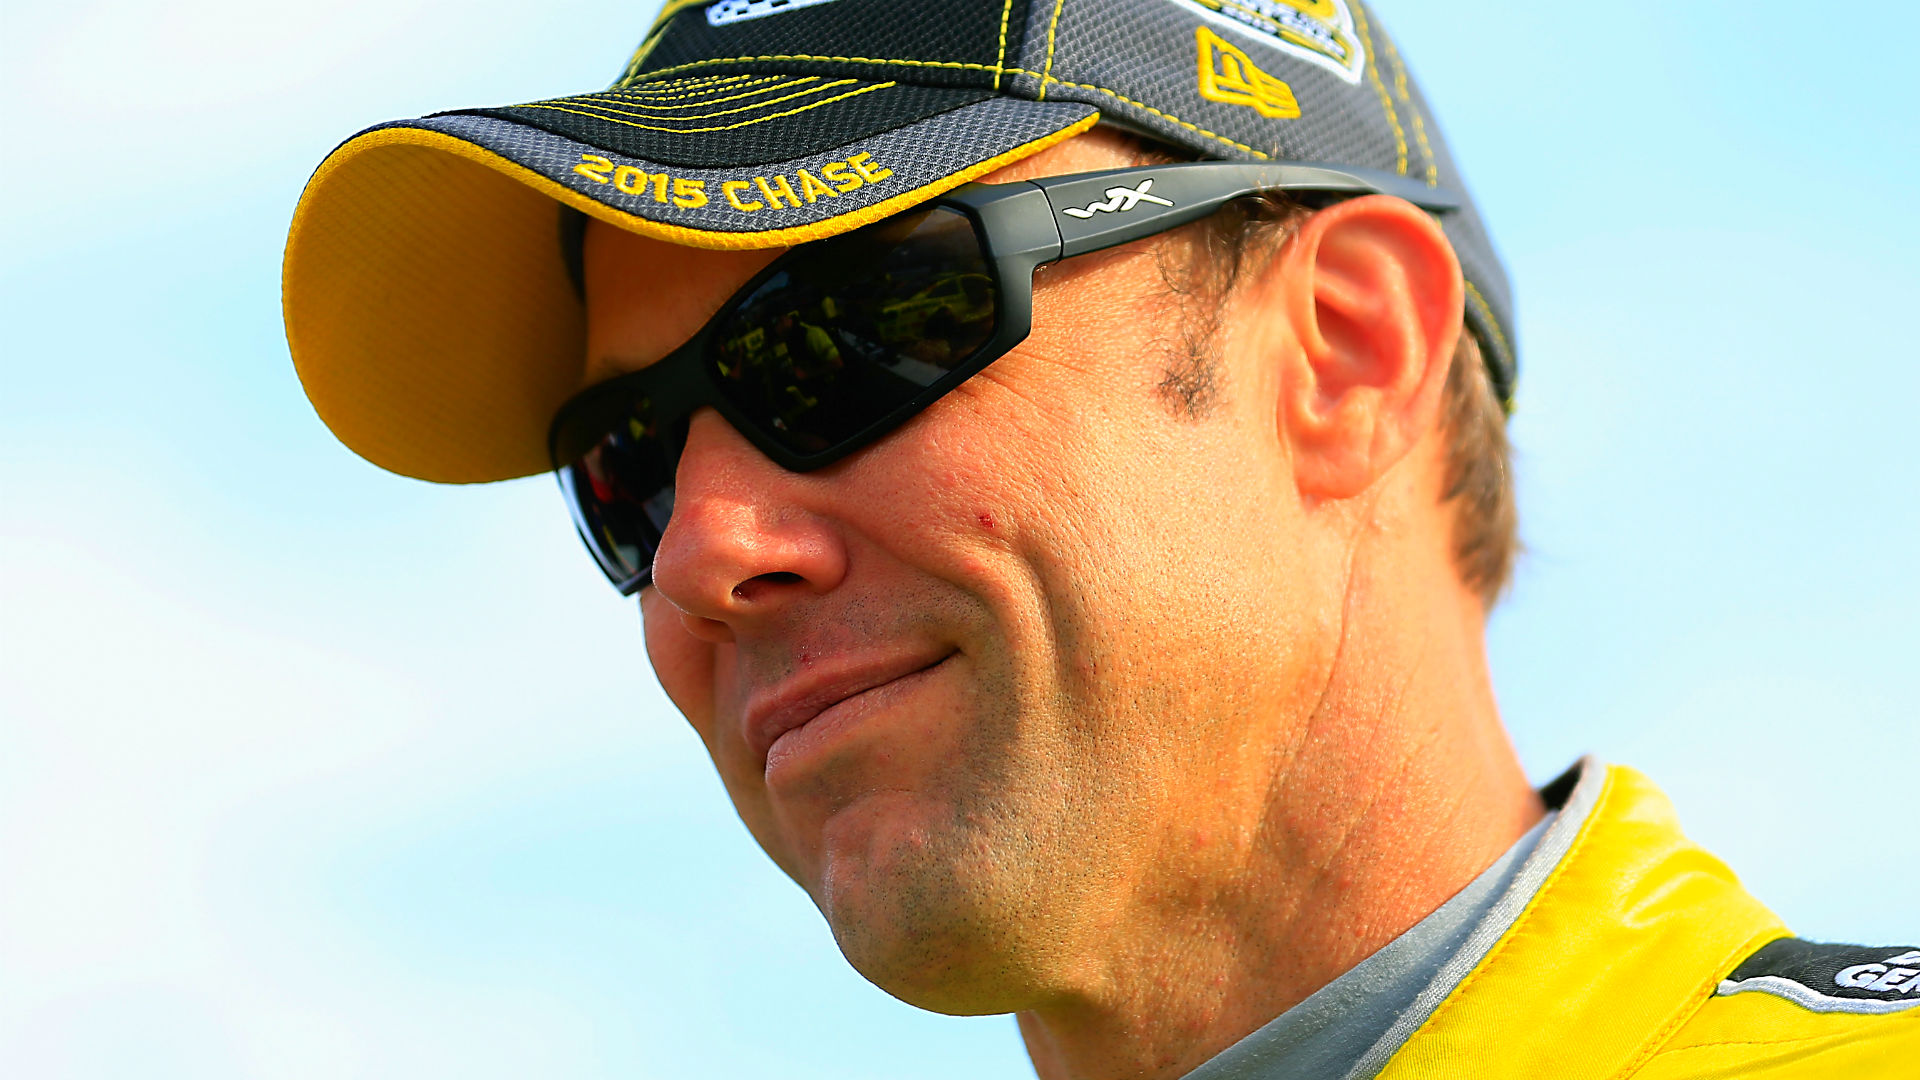 NASCAR odds and betting preview – Kenseth in dire need of win at Kansas